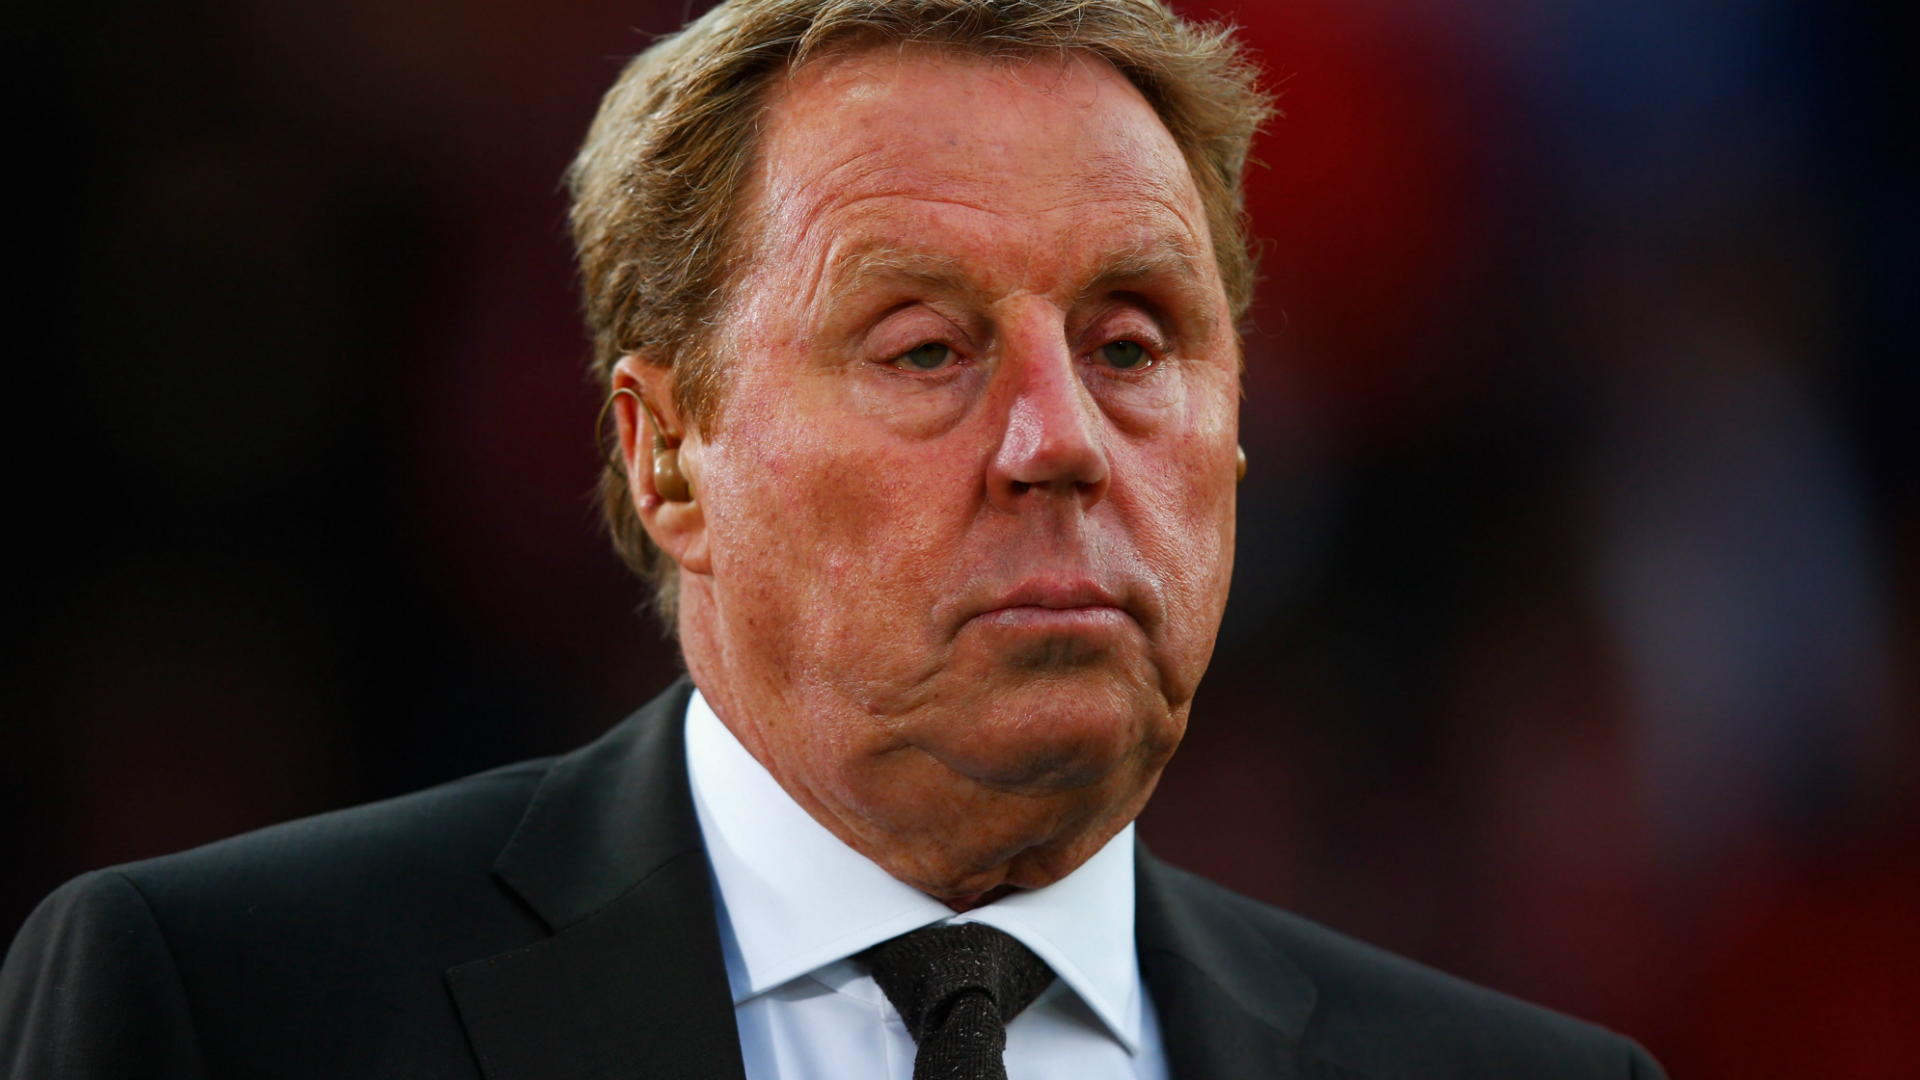 NFF squash rumours of hiring Harry Redknapp as head coach - Sports Leo